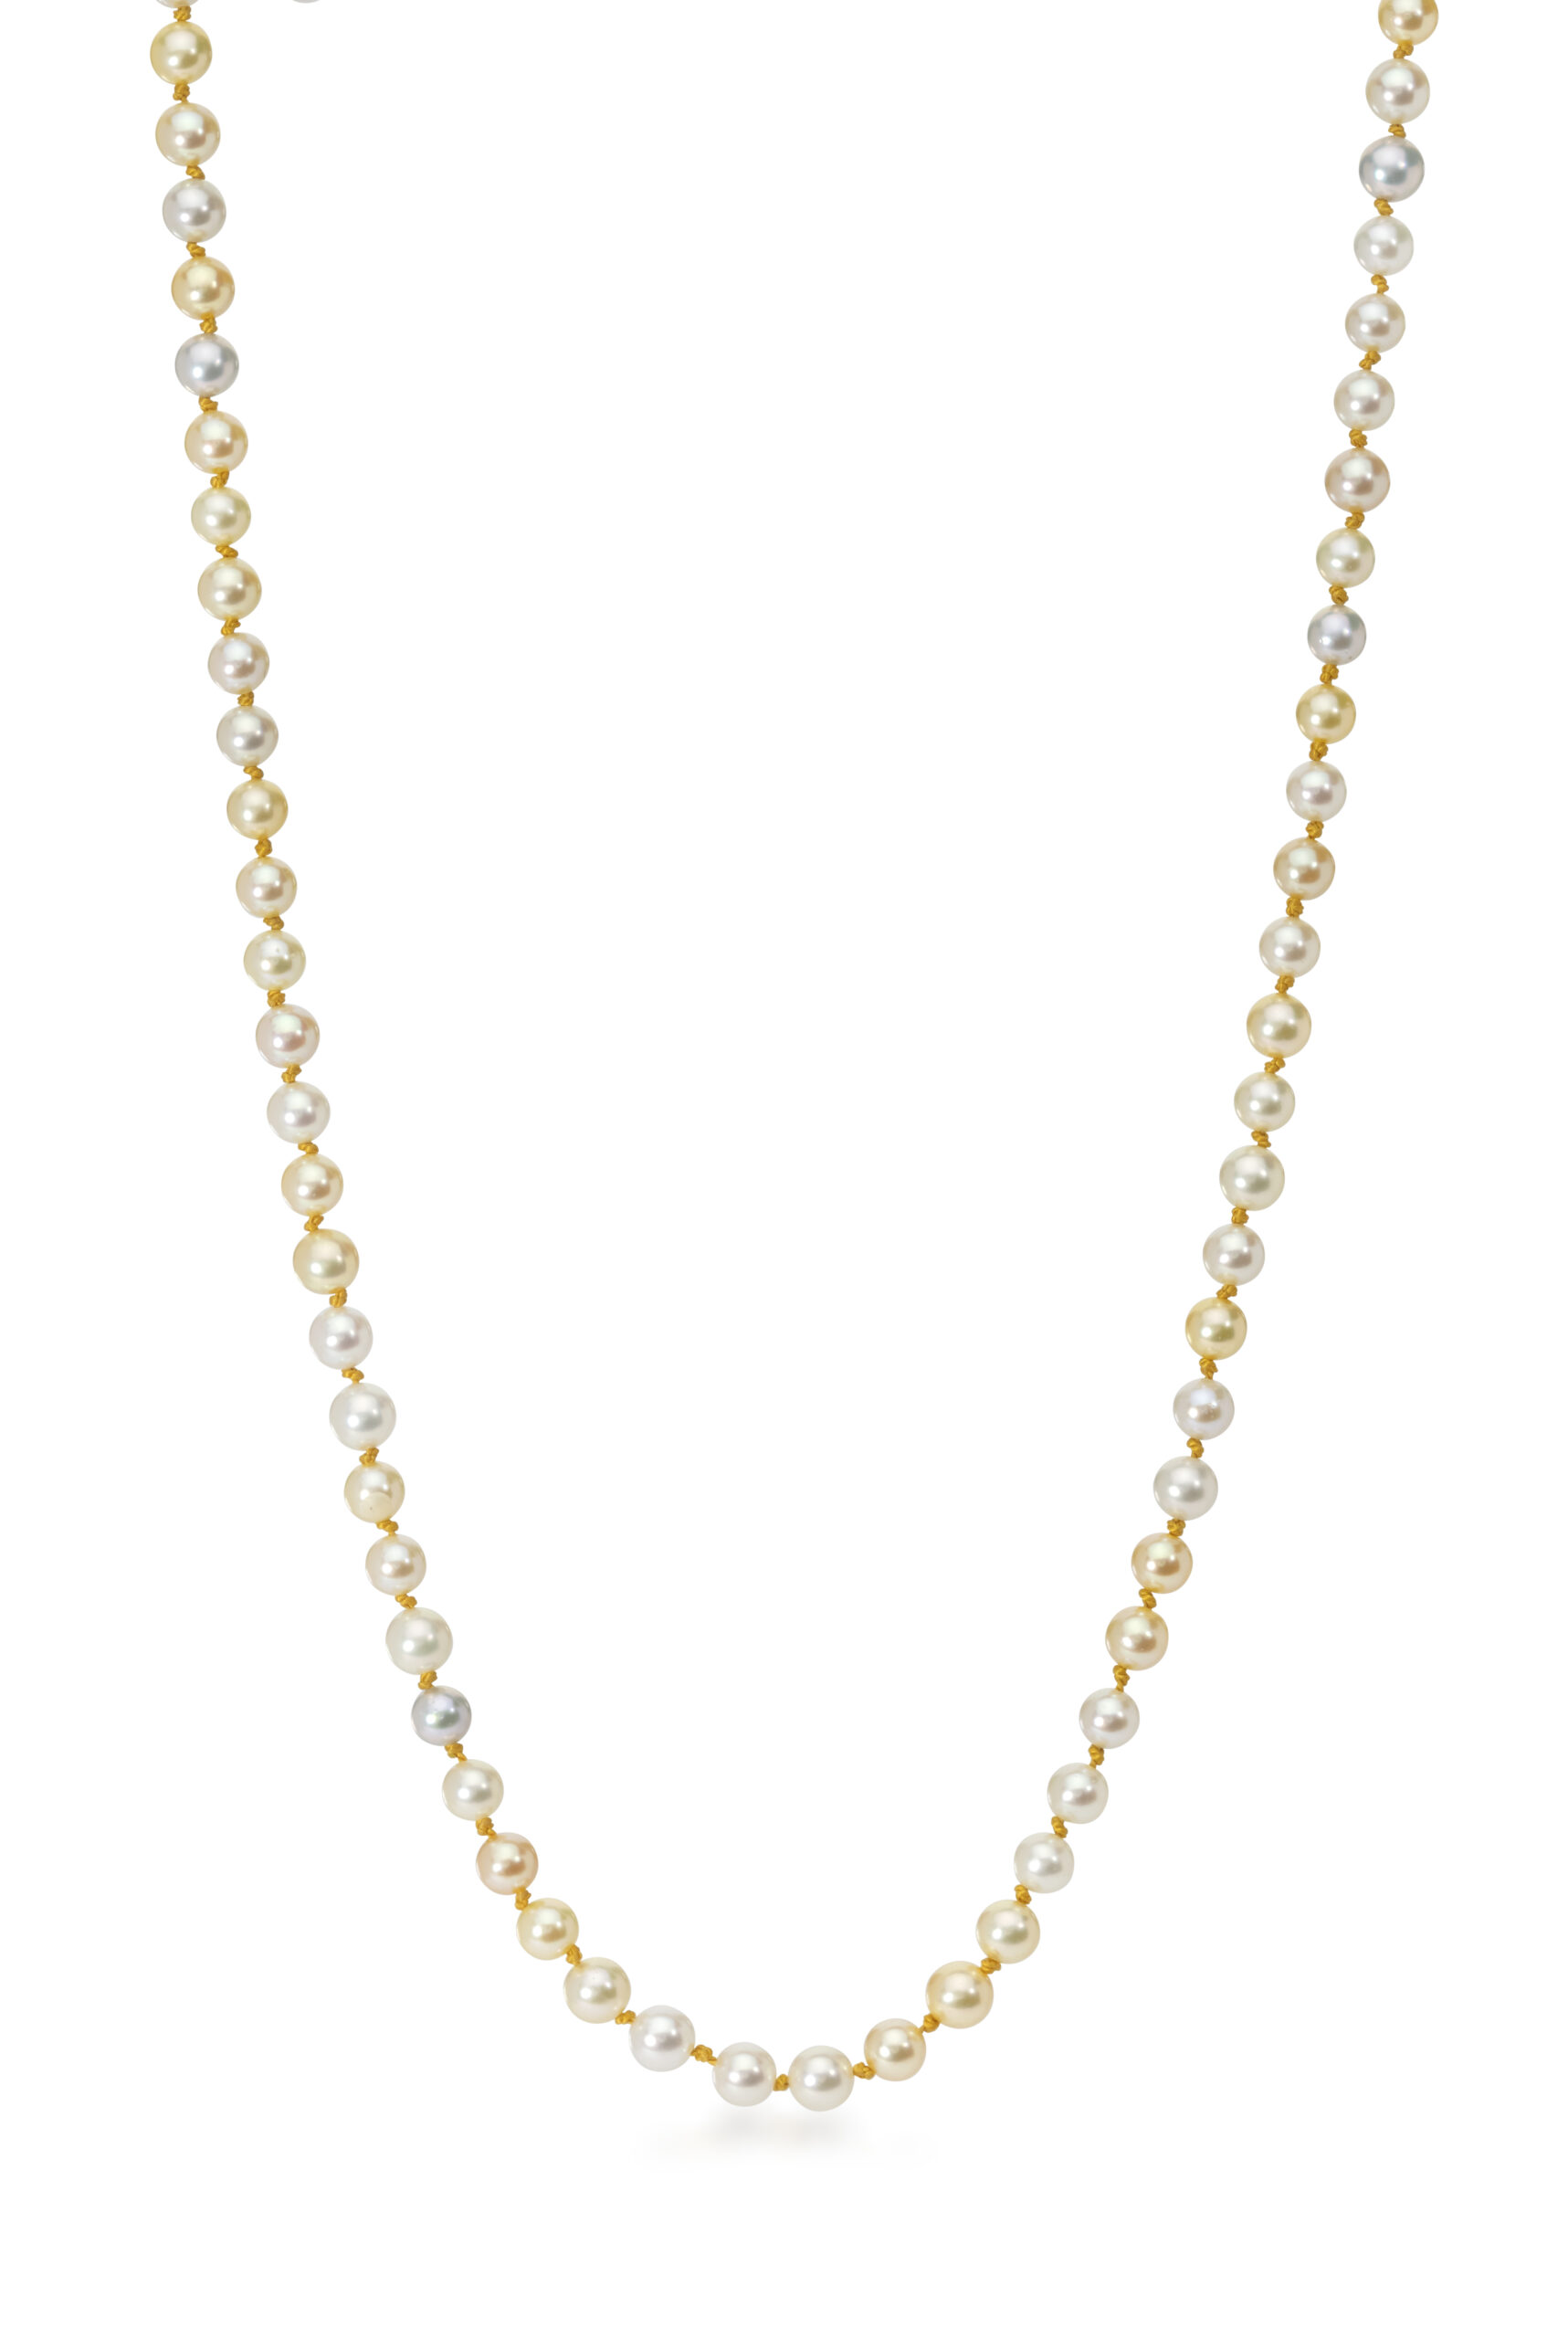 Dreamer Pearl necklace